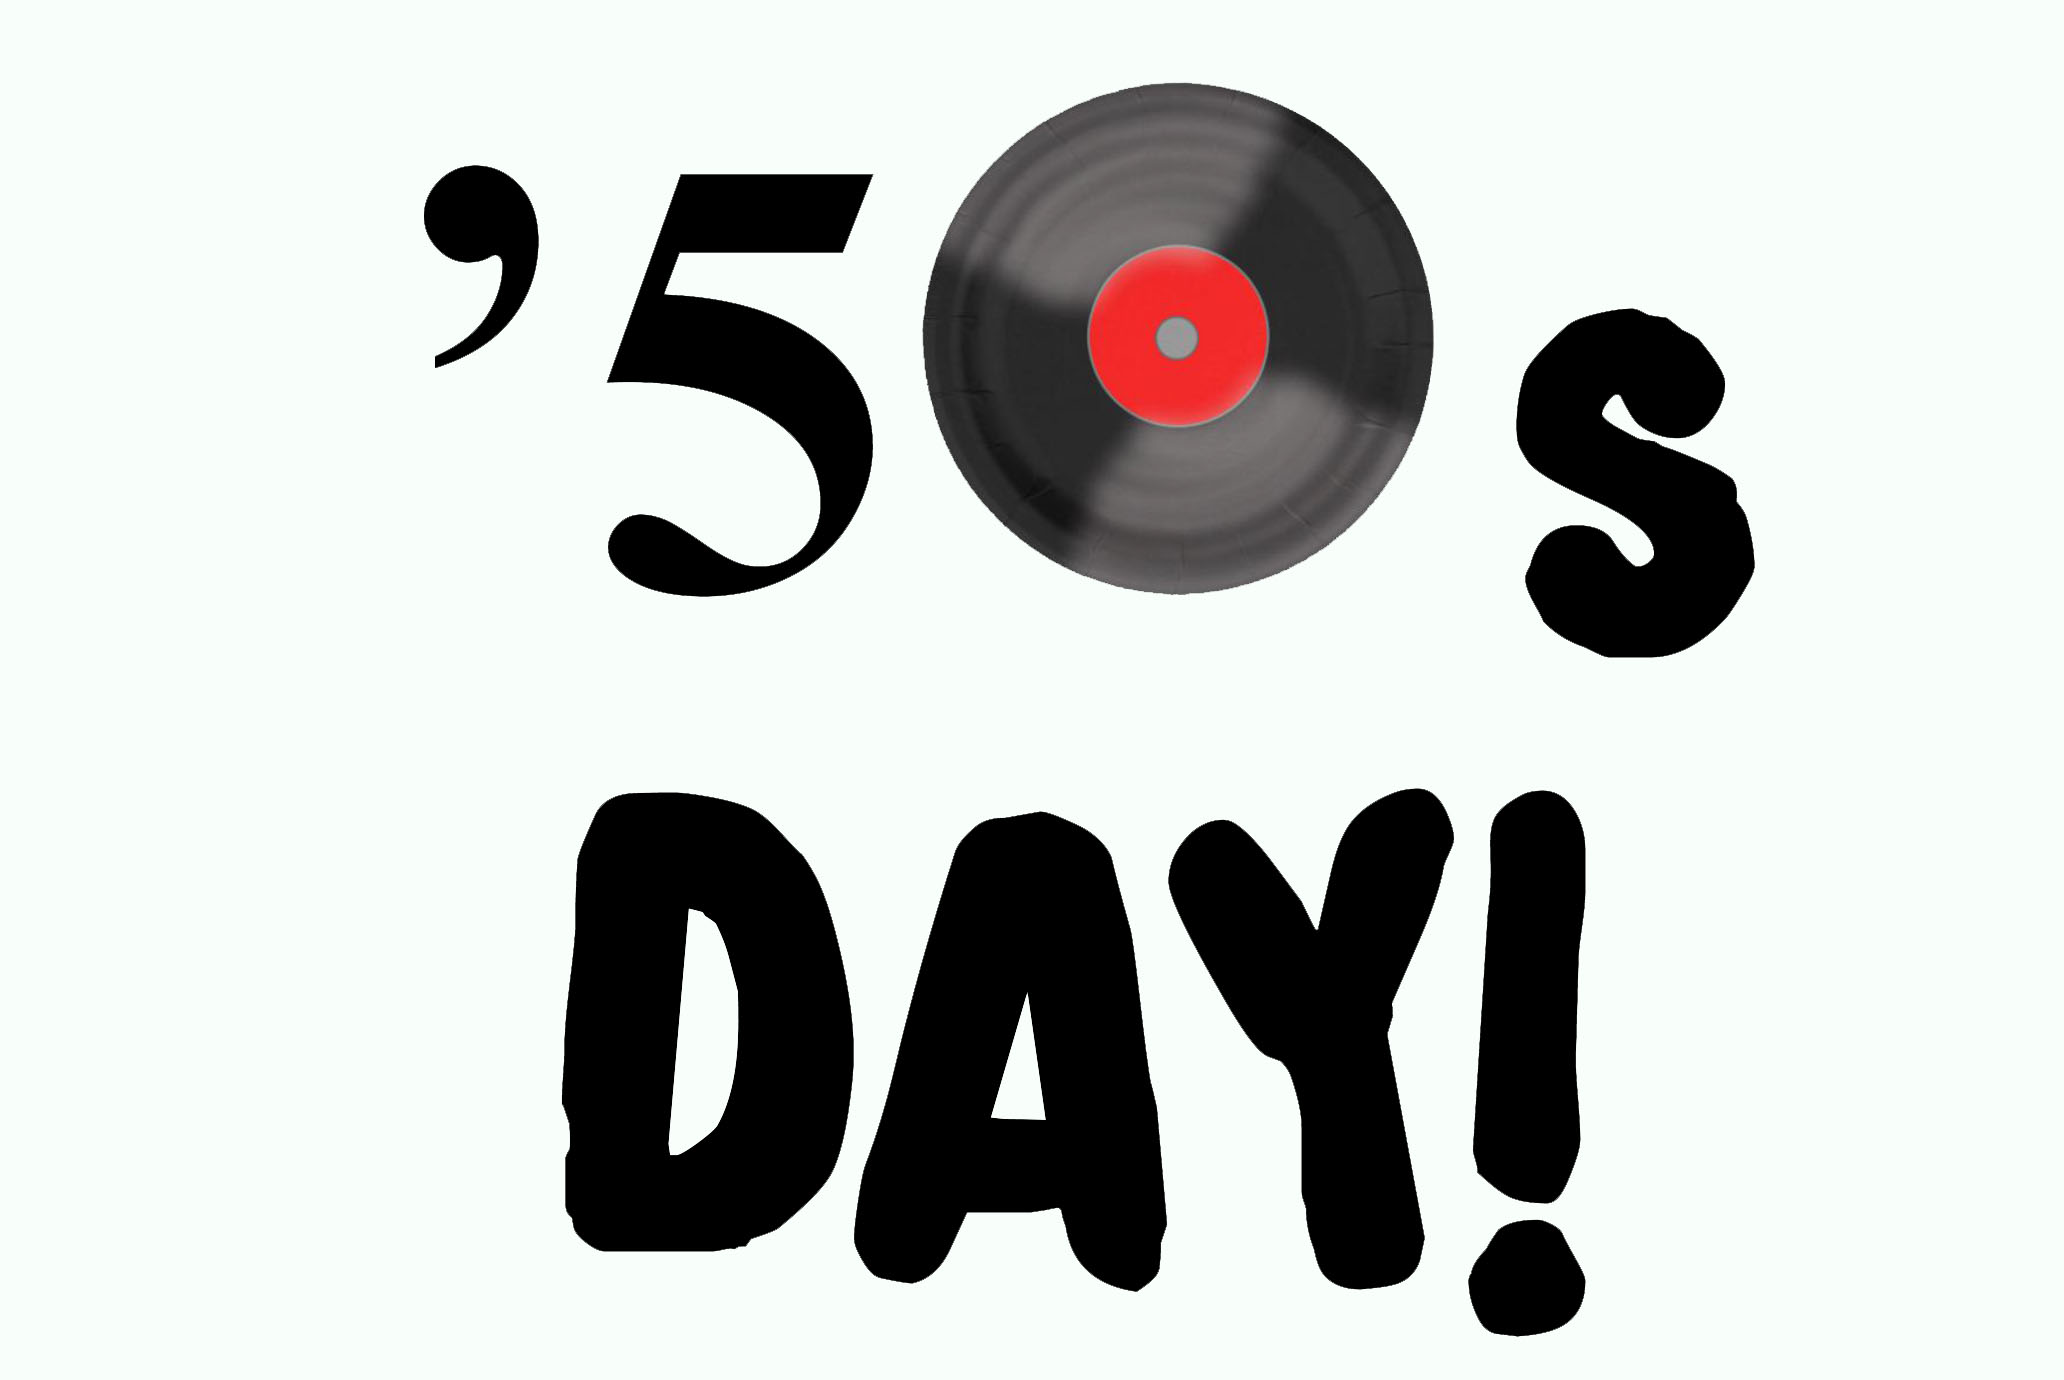 50s Day!.